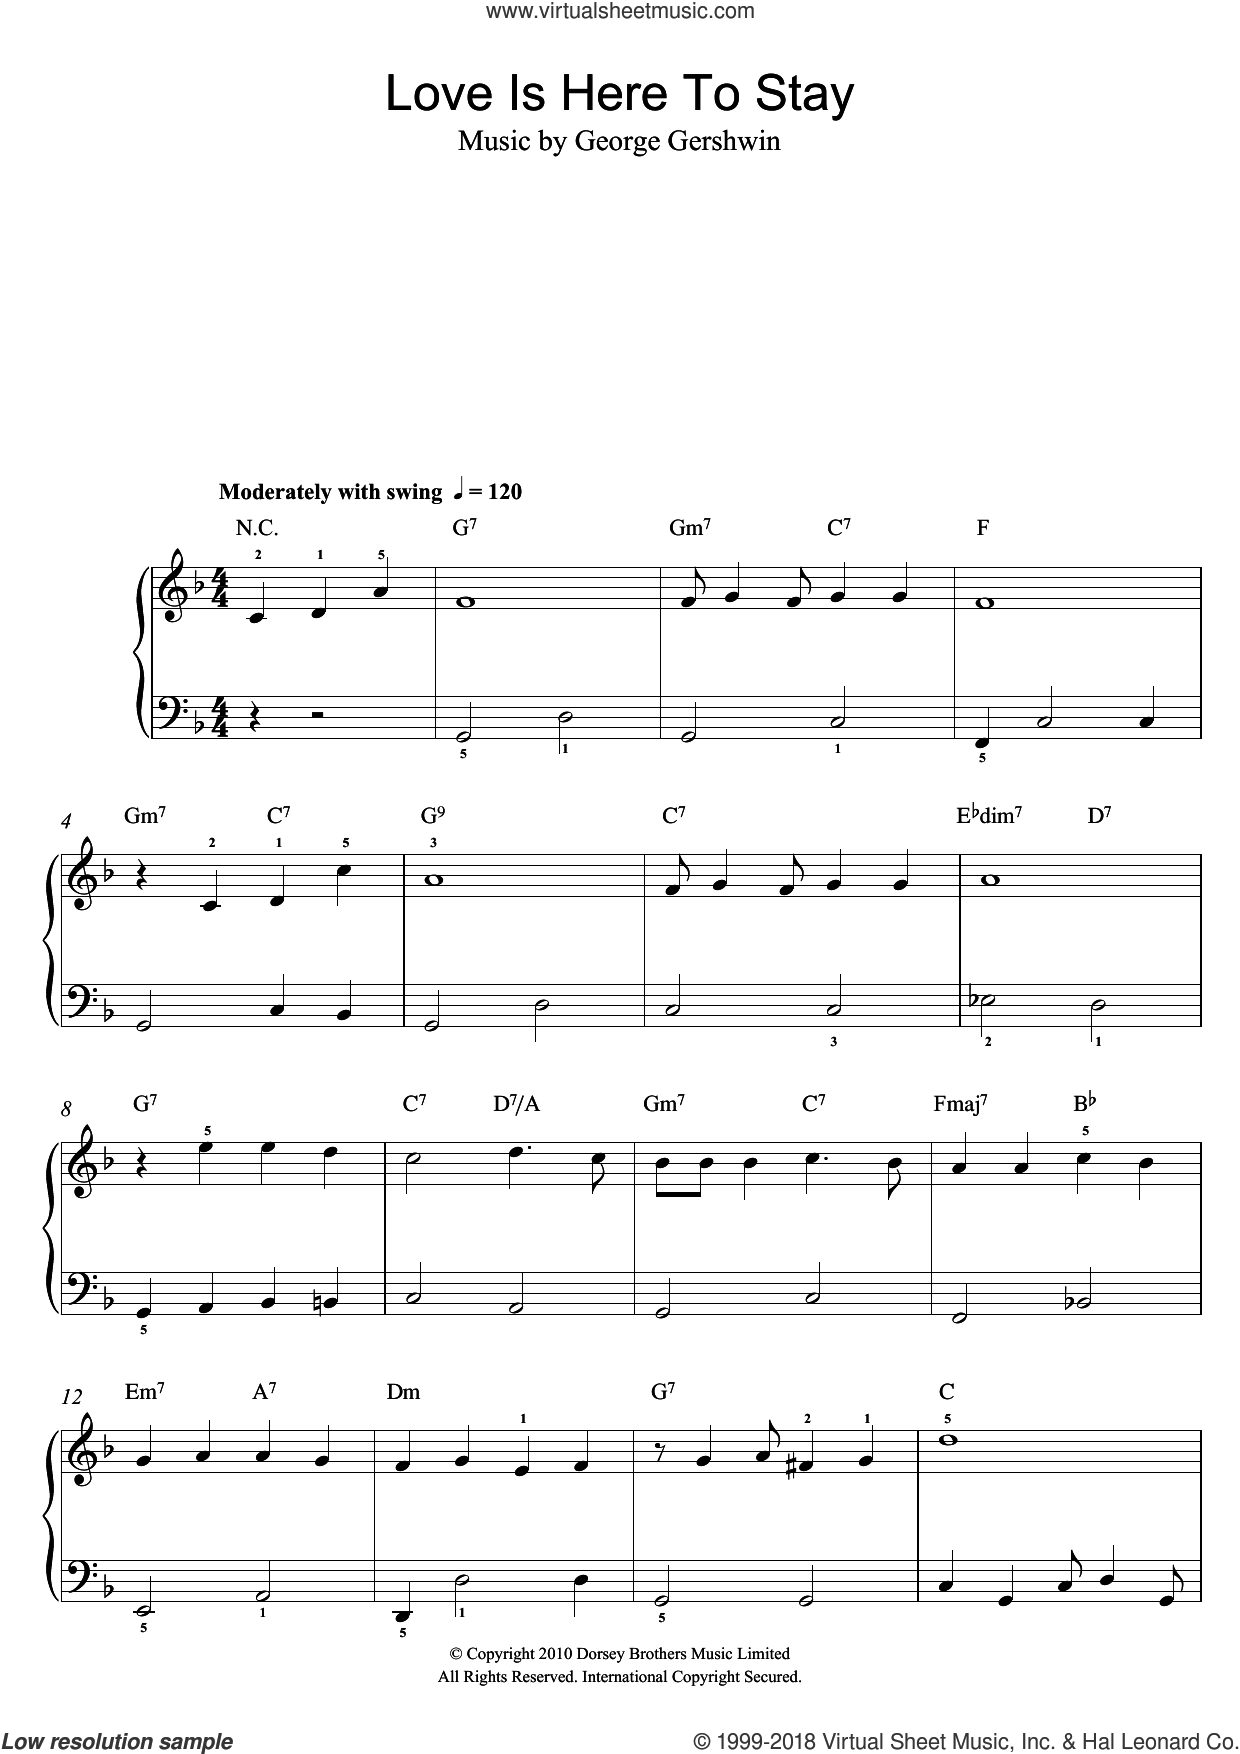 Love Is Here To Stay sheet music for piano solo by George Gershwin